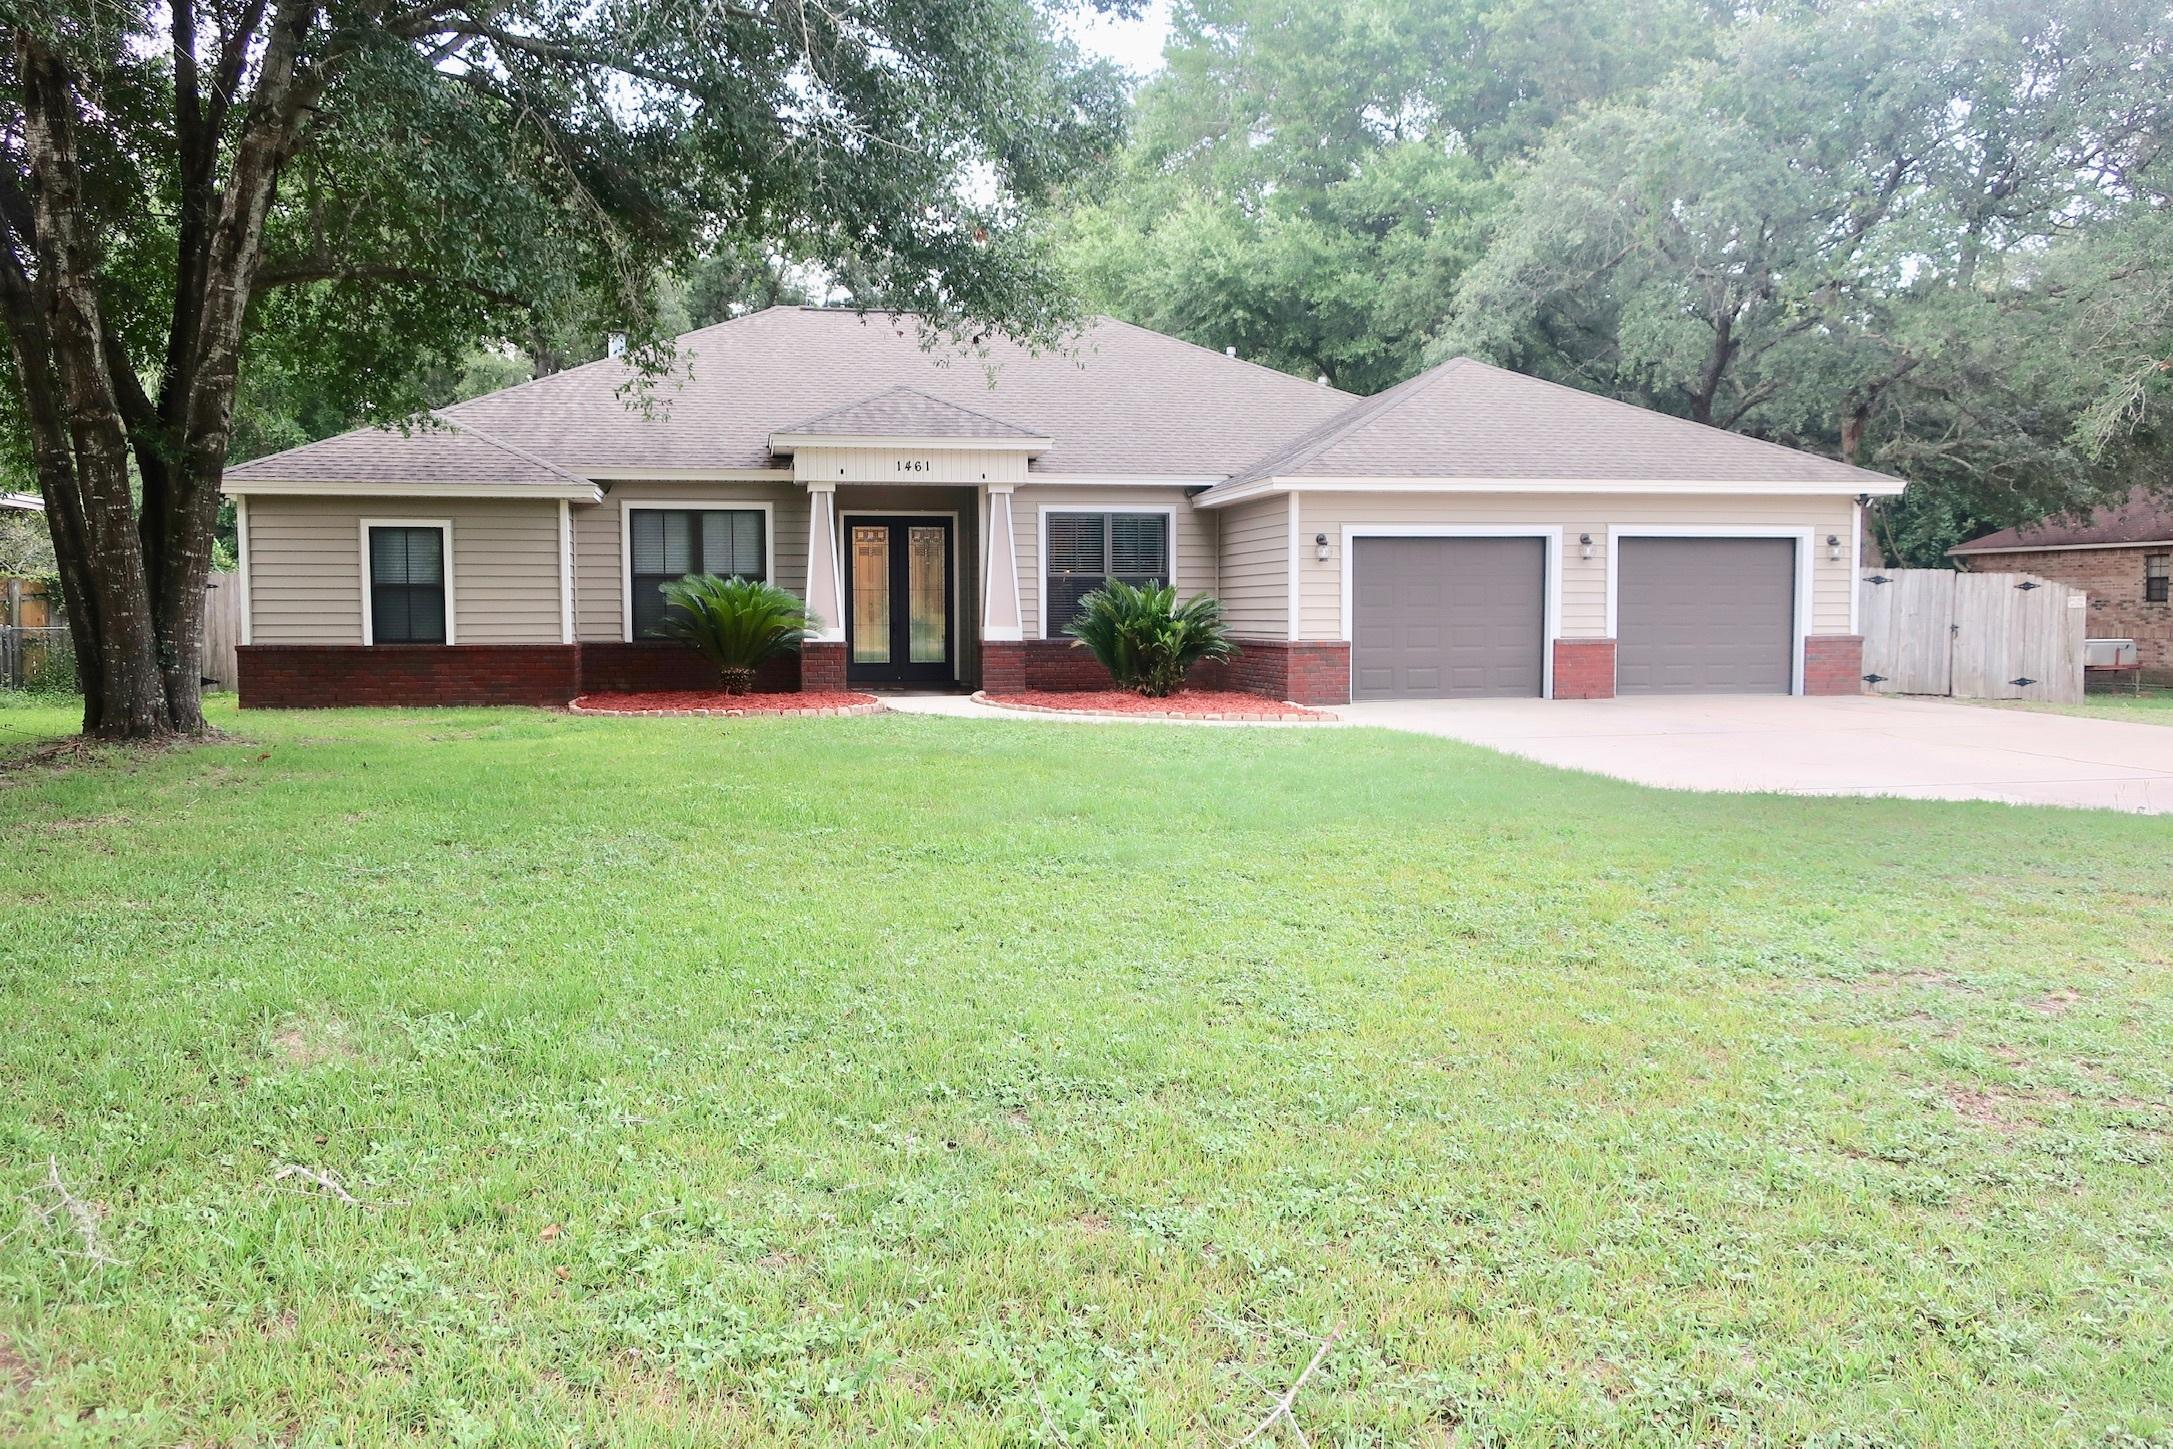 1461  Pine Street, Niceville in Okaloosa County, FL 32578 Home for Sale